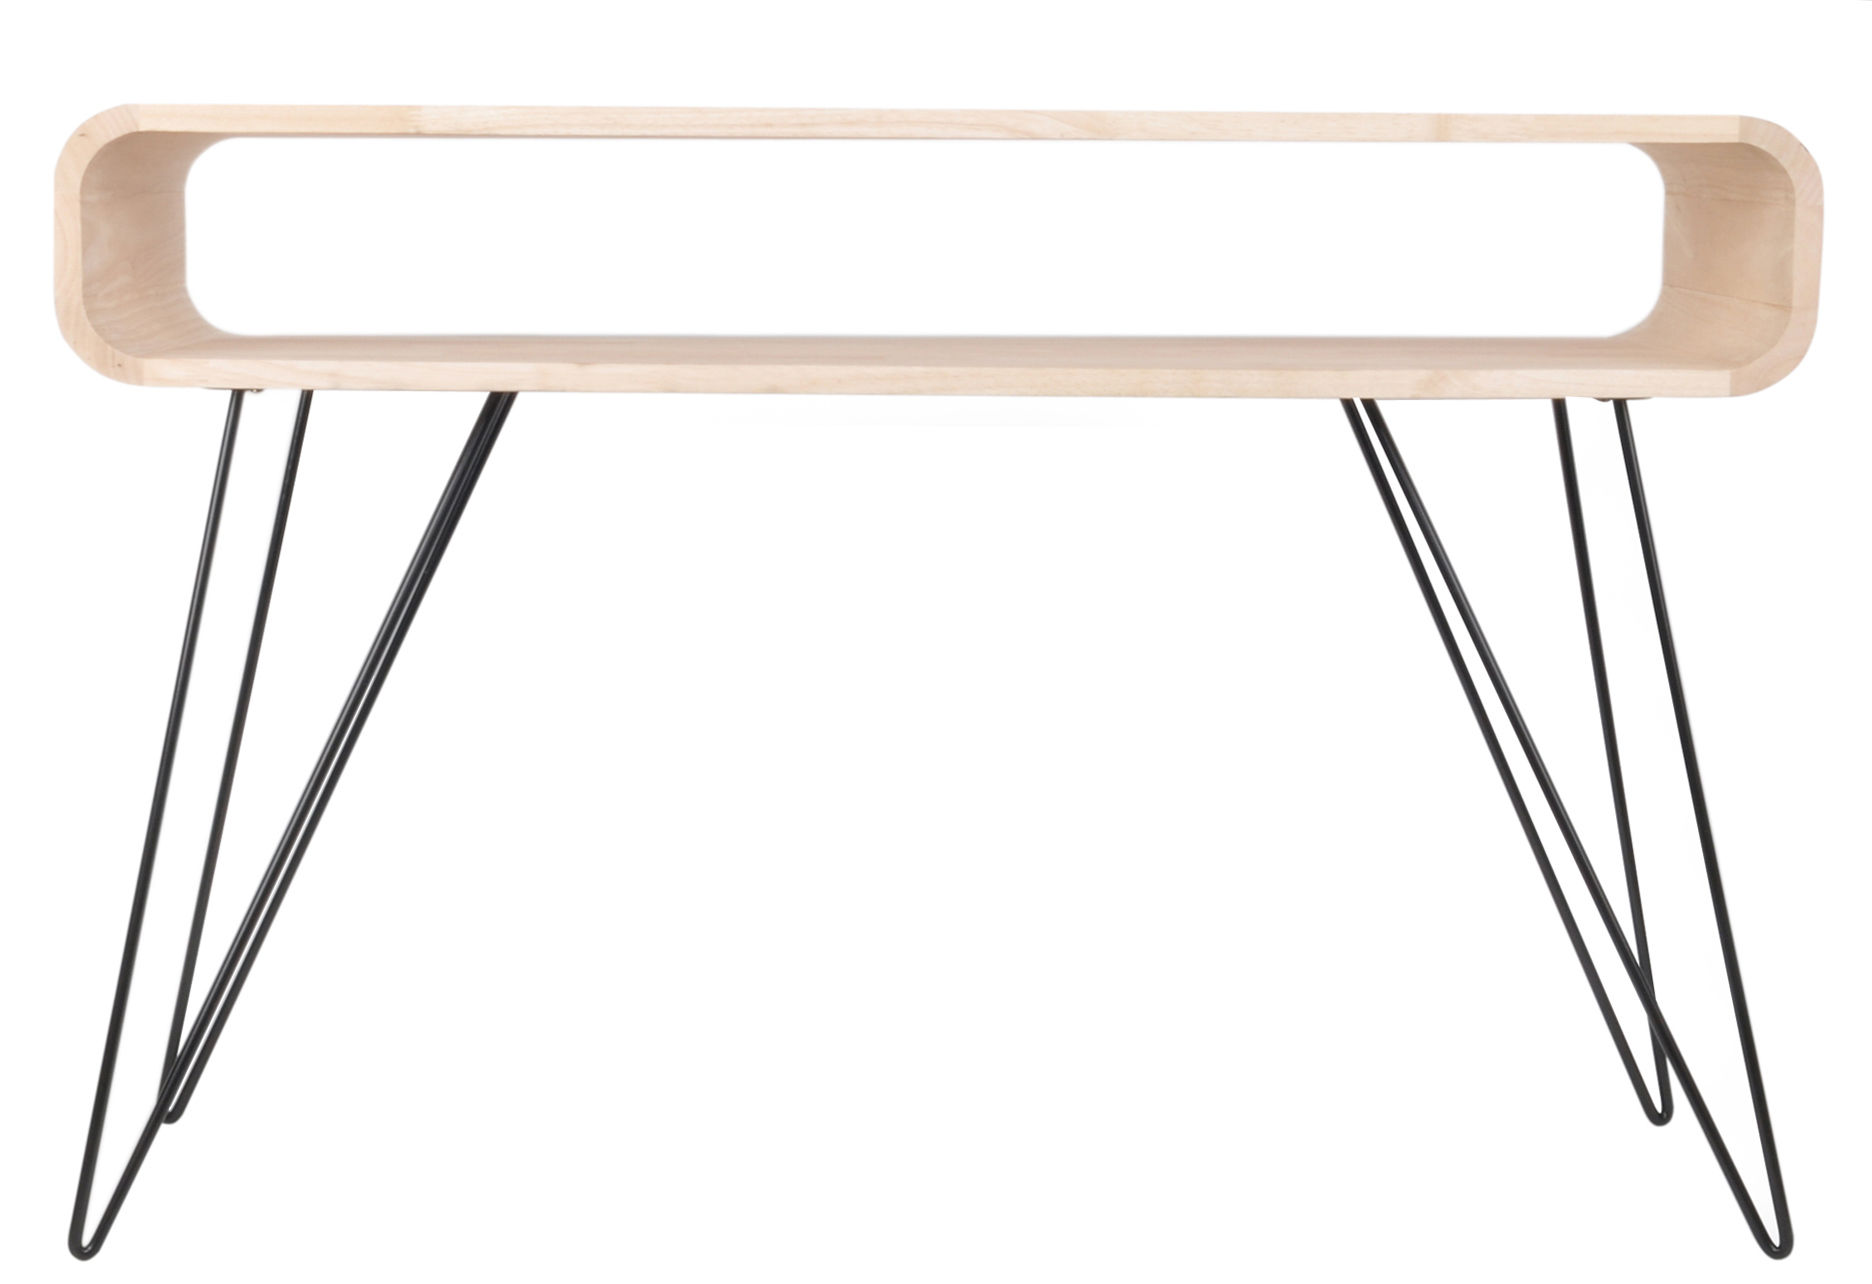 Furniture - Console Tables - Metro Sofa Console - 120 x 40 x H 80 cm by XL Boom - Natural wood / Black - Hevea wood, Painted metal